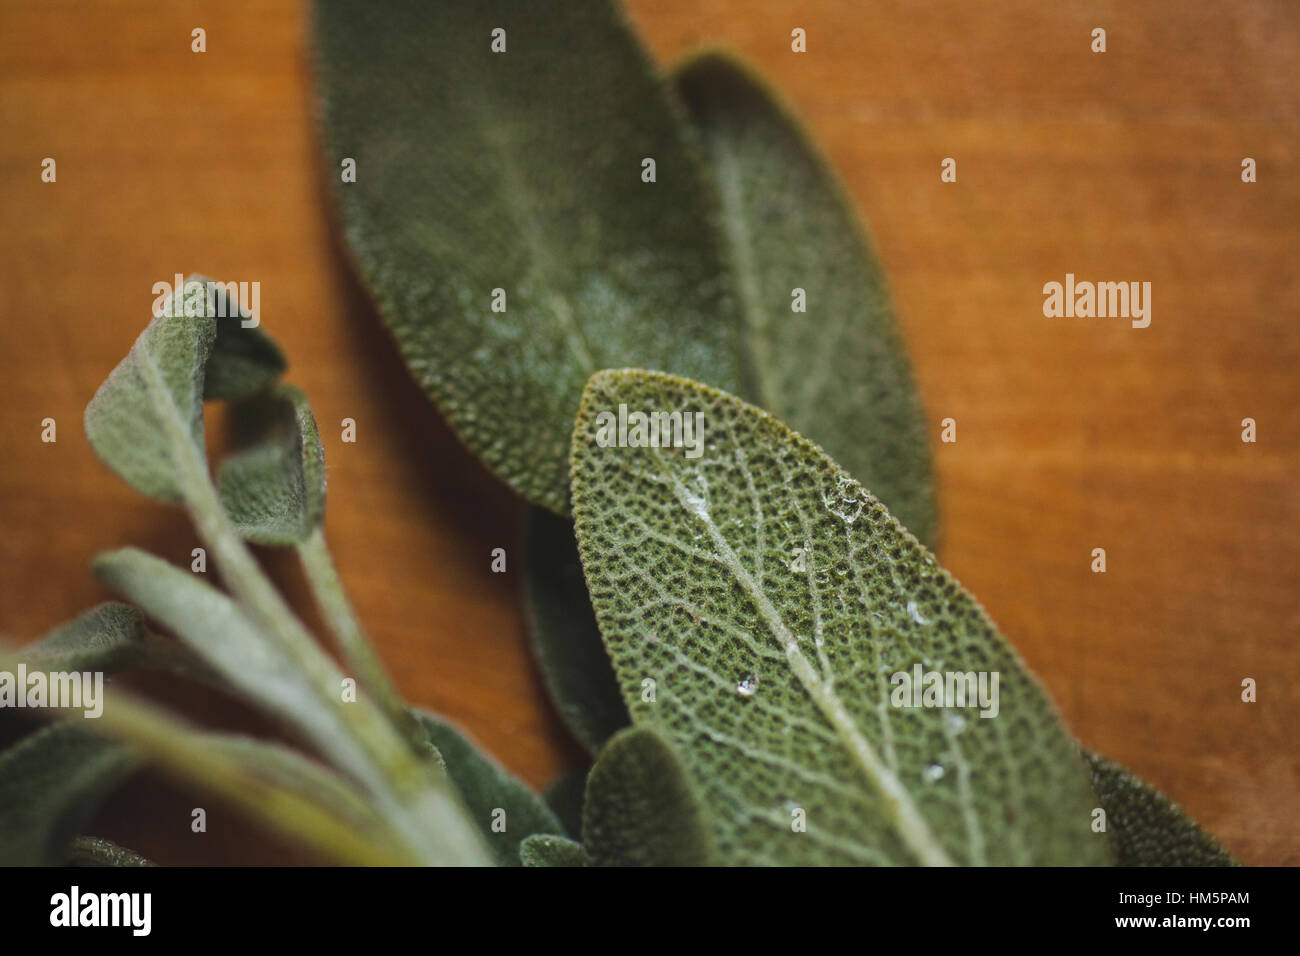 Close-up of herbs on wooden table - Stock Image